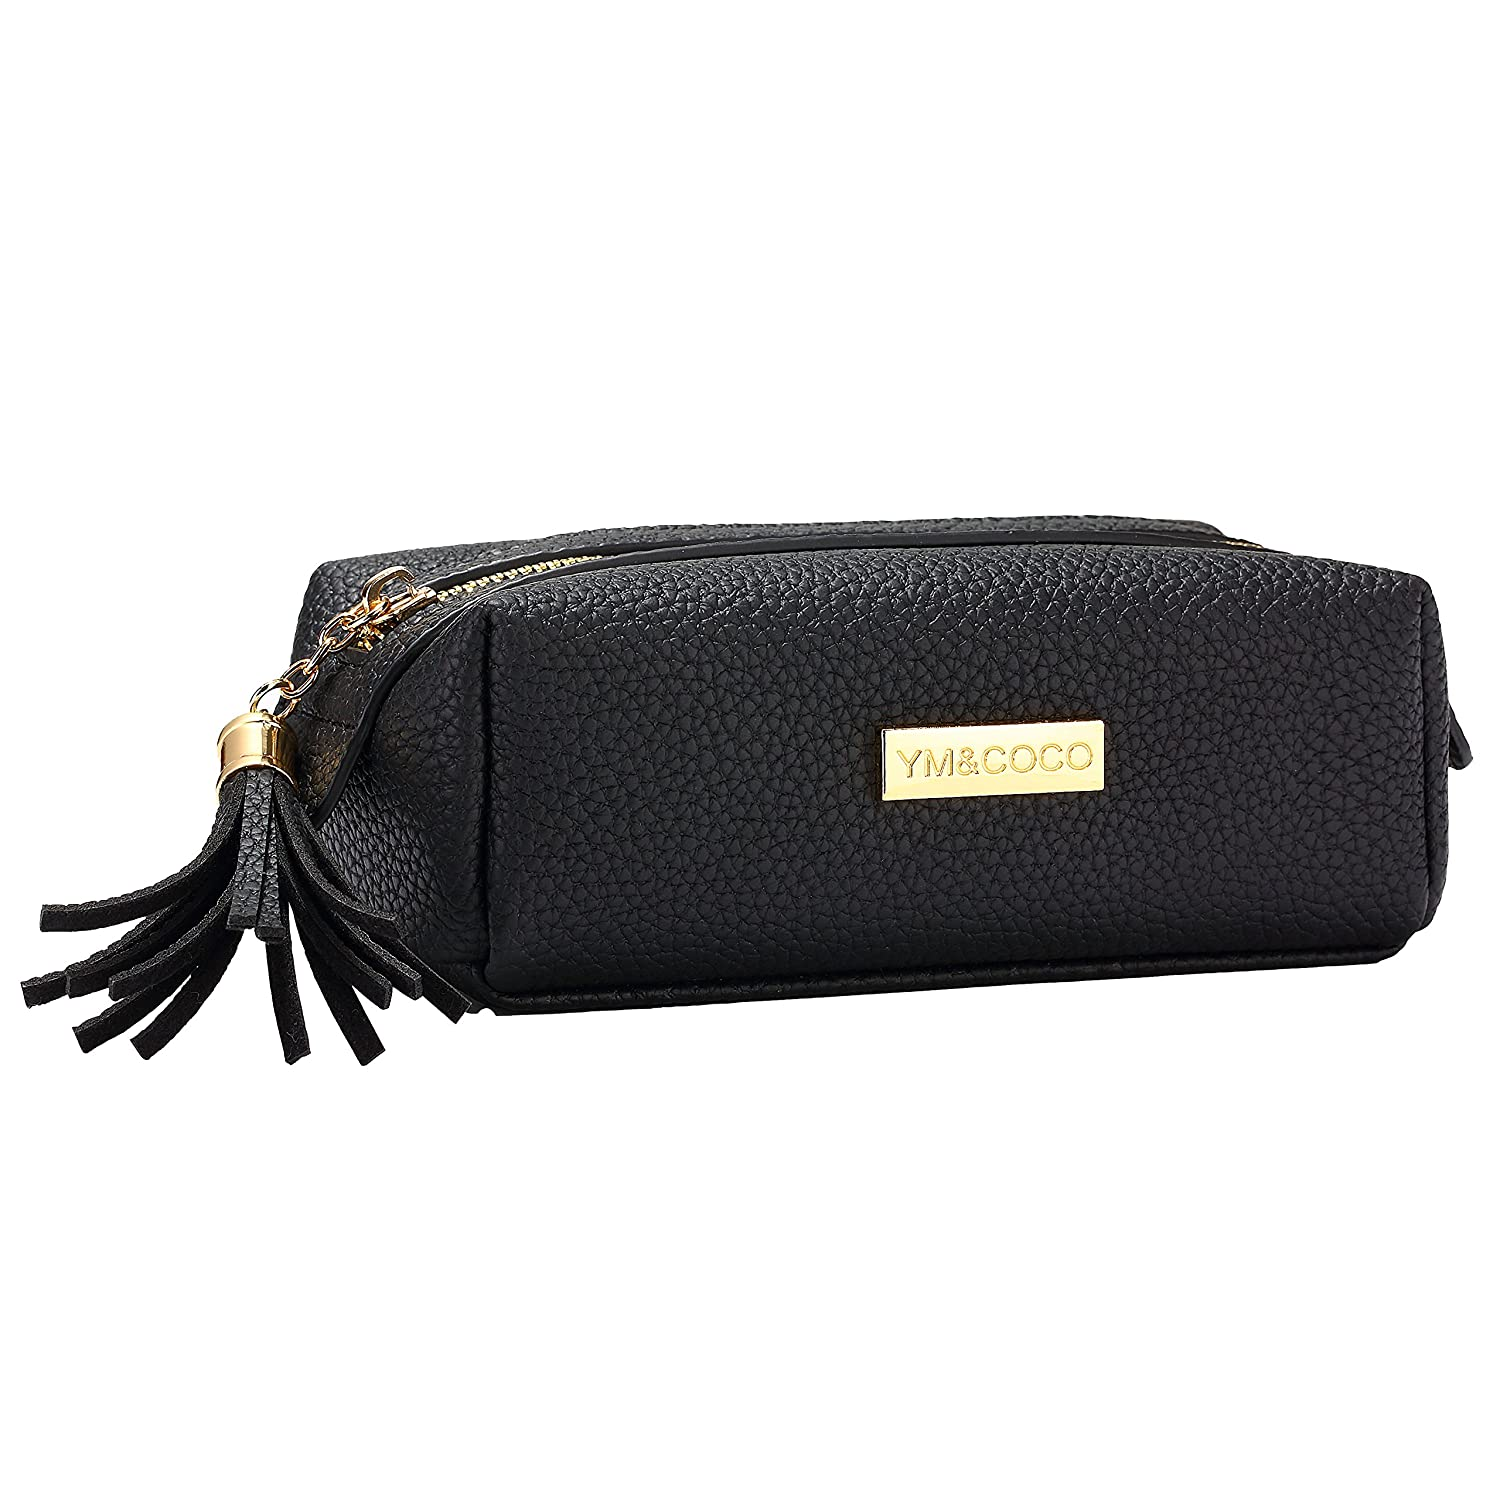 Makeup Bag Ym&Coco Cosmetic Bag For Purse Pencil Case Pouch Leather Handy Organizer With Tassel Heavy Duty Zips For Lipstick, Brushes, Mascara Basic Cosmetics Black   4 Colors For Choice by Ym&Coco